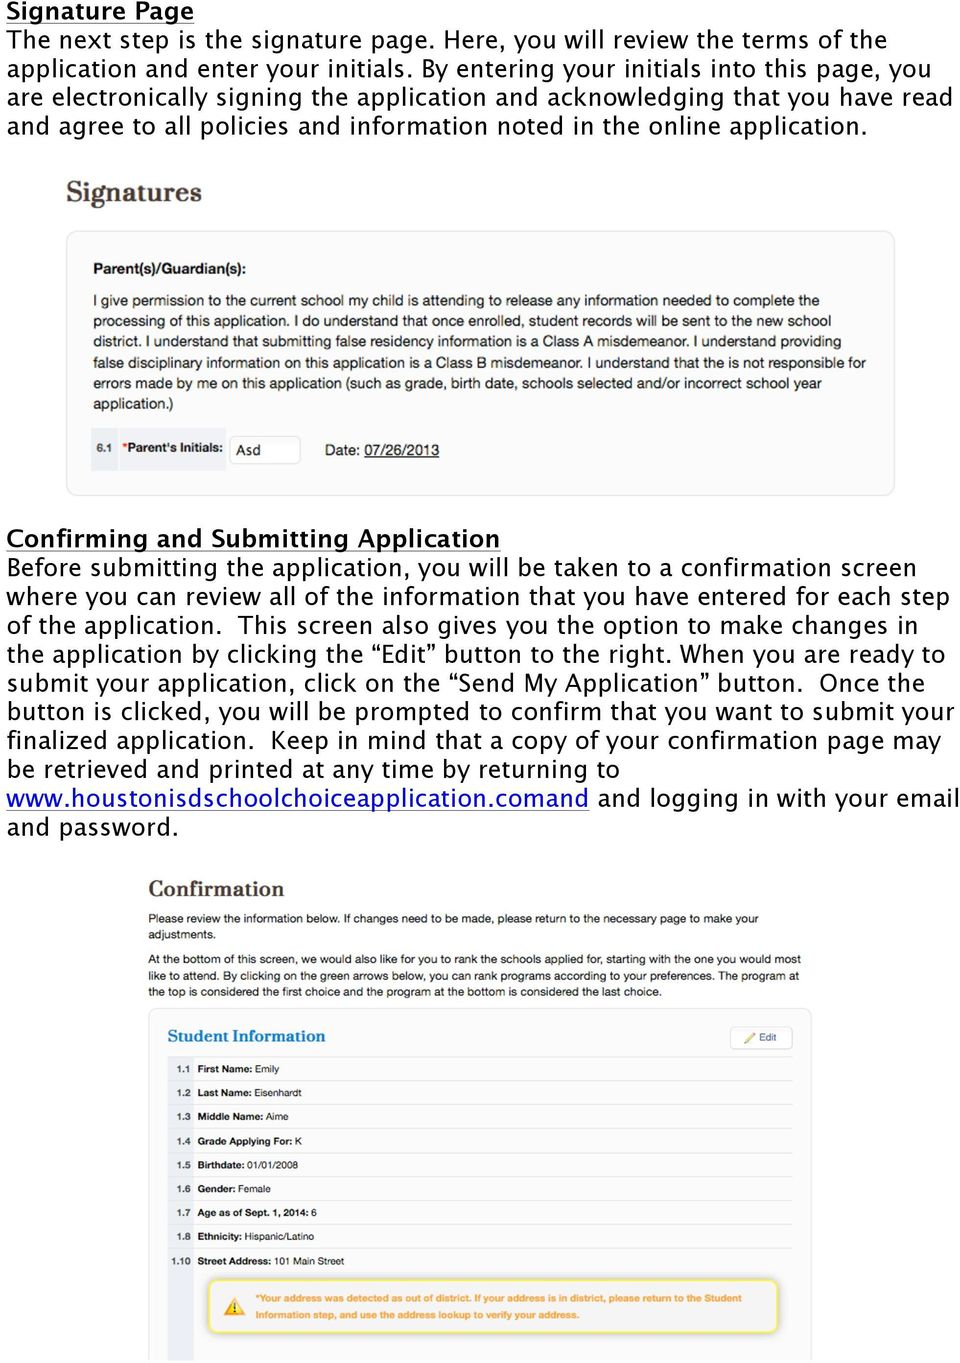 Confirming and Submitting Application Before submitting the application, you will be taken to a confirmation screen where you can review all of the information that you have entered for each step of